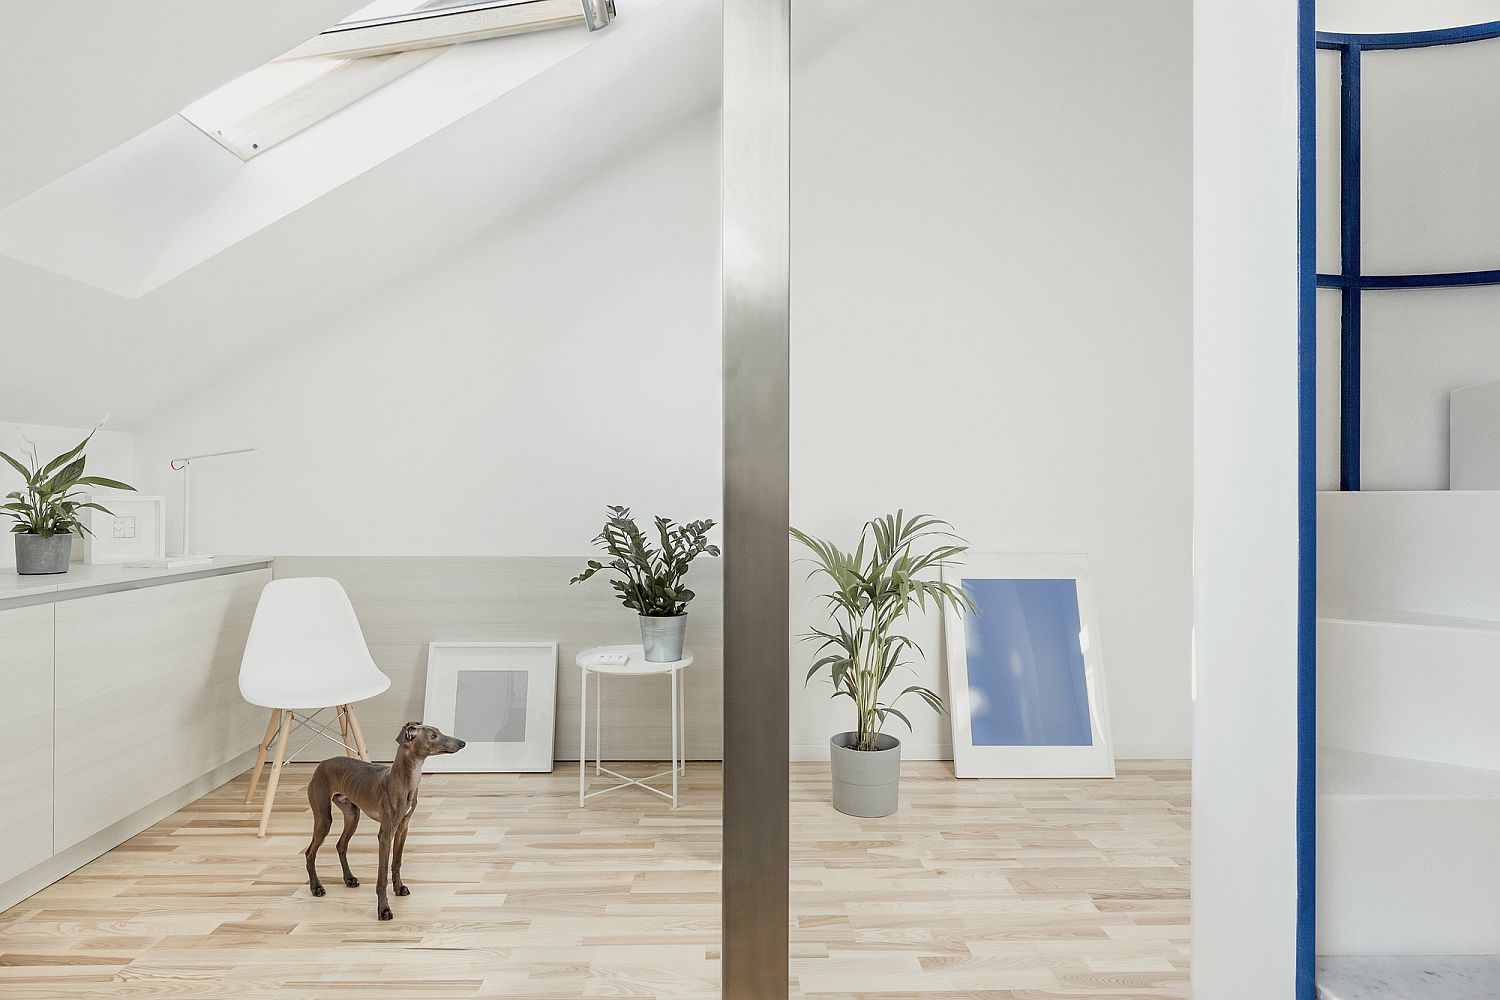 30-Square meter small one bedroom attic apartment in Milan with a monochromatic backdrop